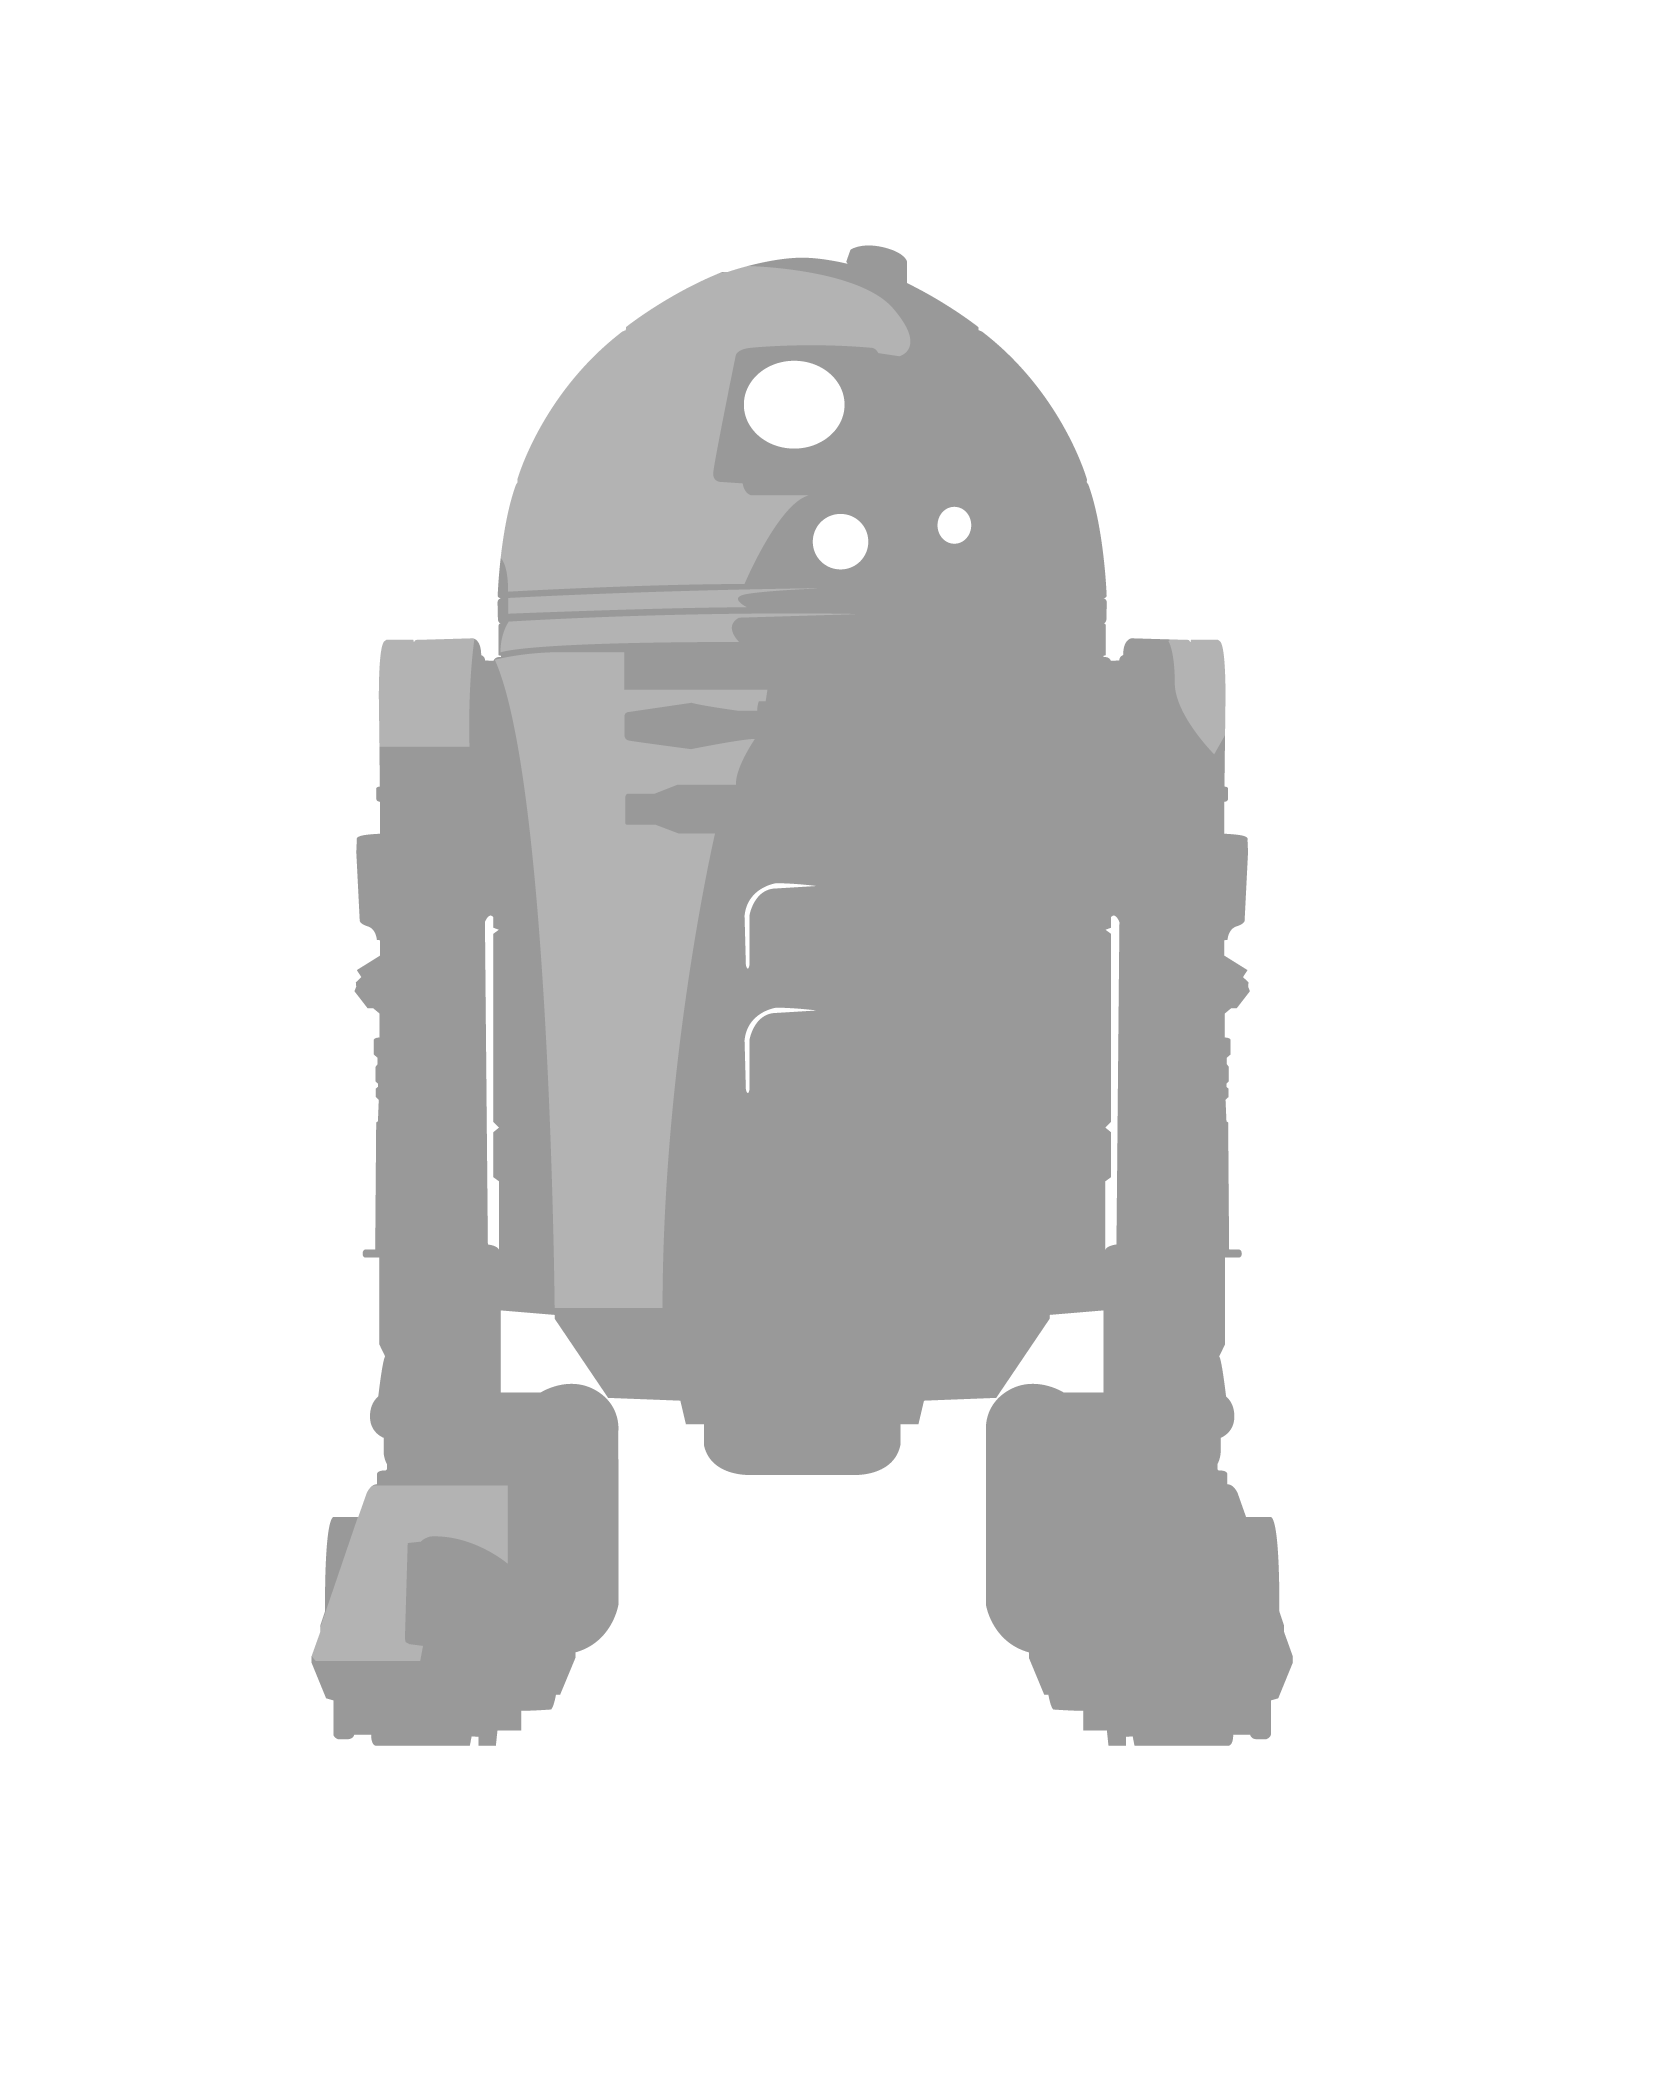 R2-D2 - Sphero Support and Knowledge Base